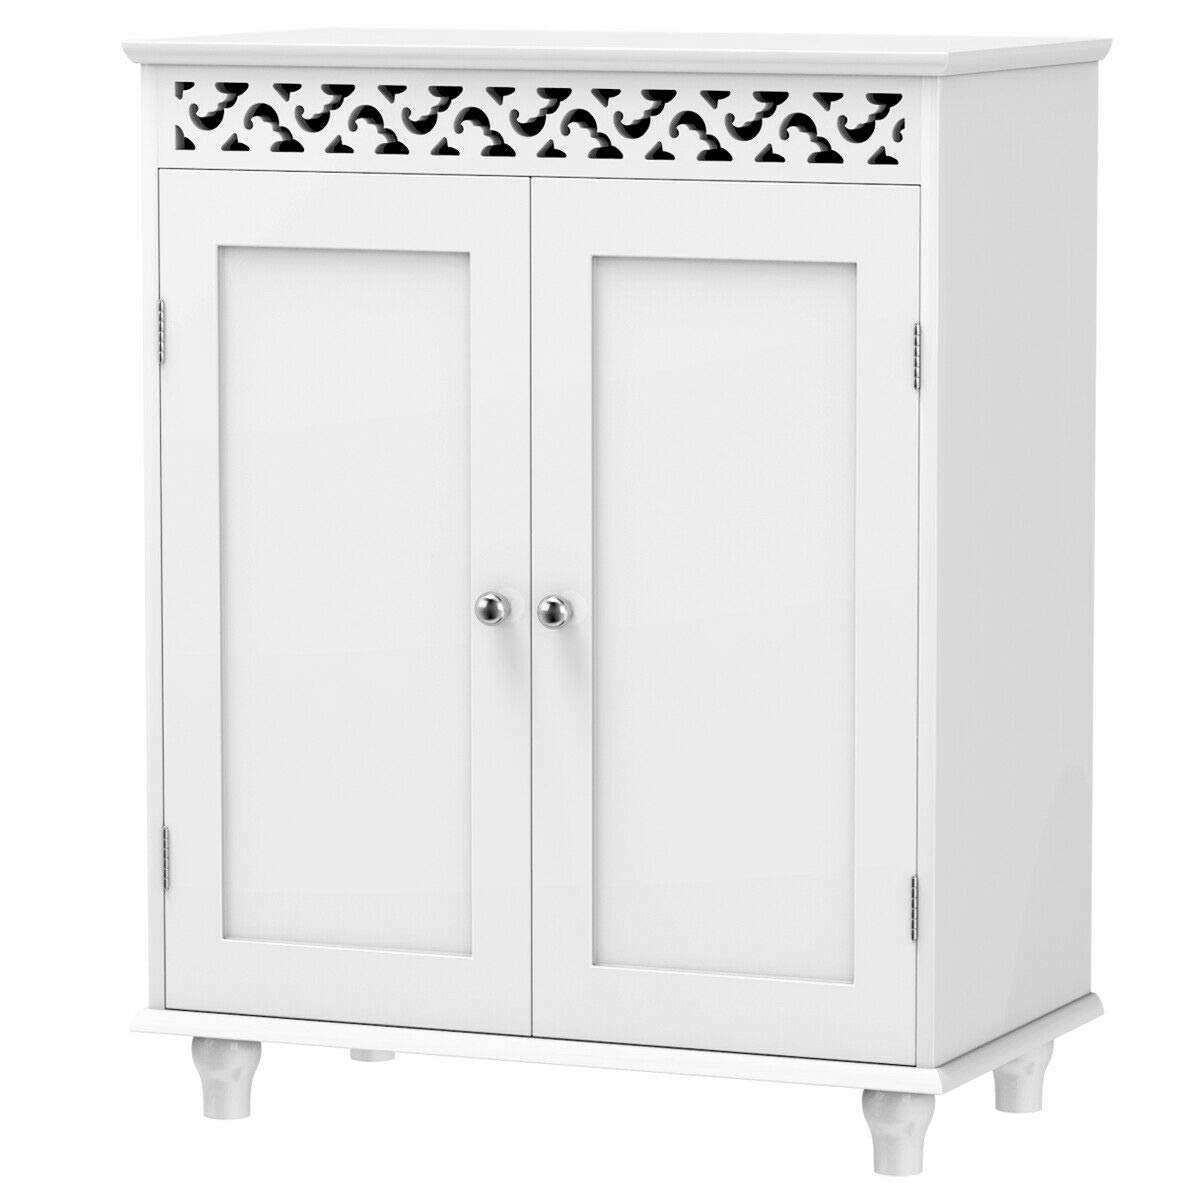 Tangkula Floor Cabinet, Bathroom Storage Cabinet, Wooden Modern Home Living Room Side Organizer, Free Standing Storage Cabinet Furniture (White) by Tangkula